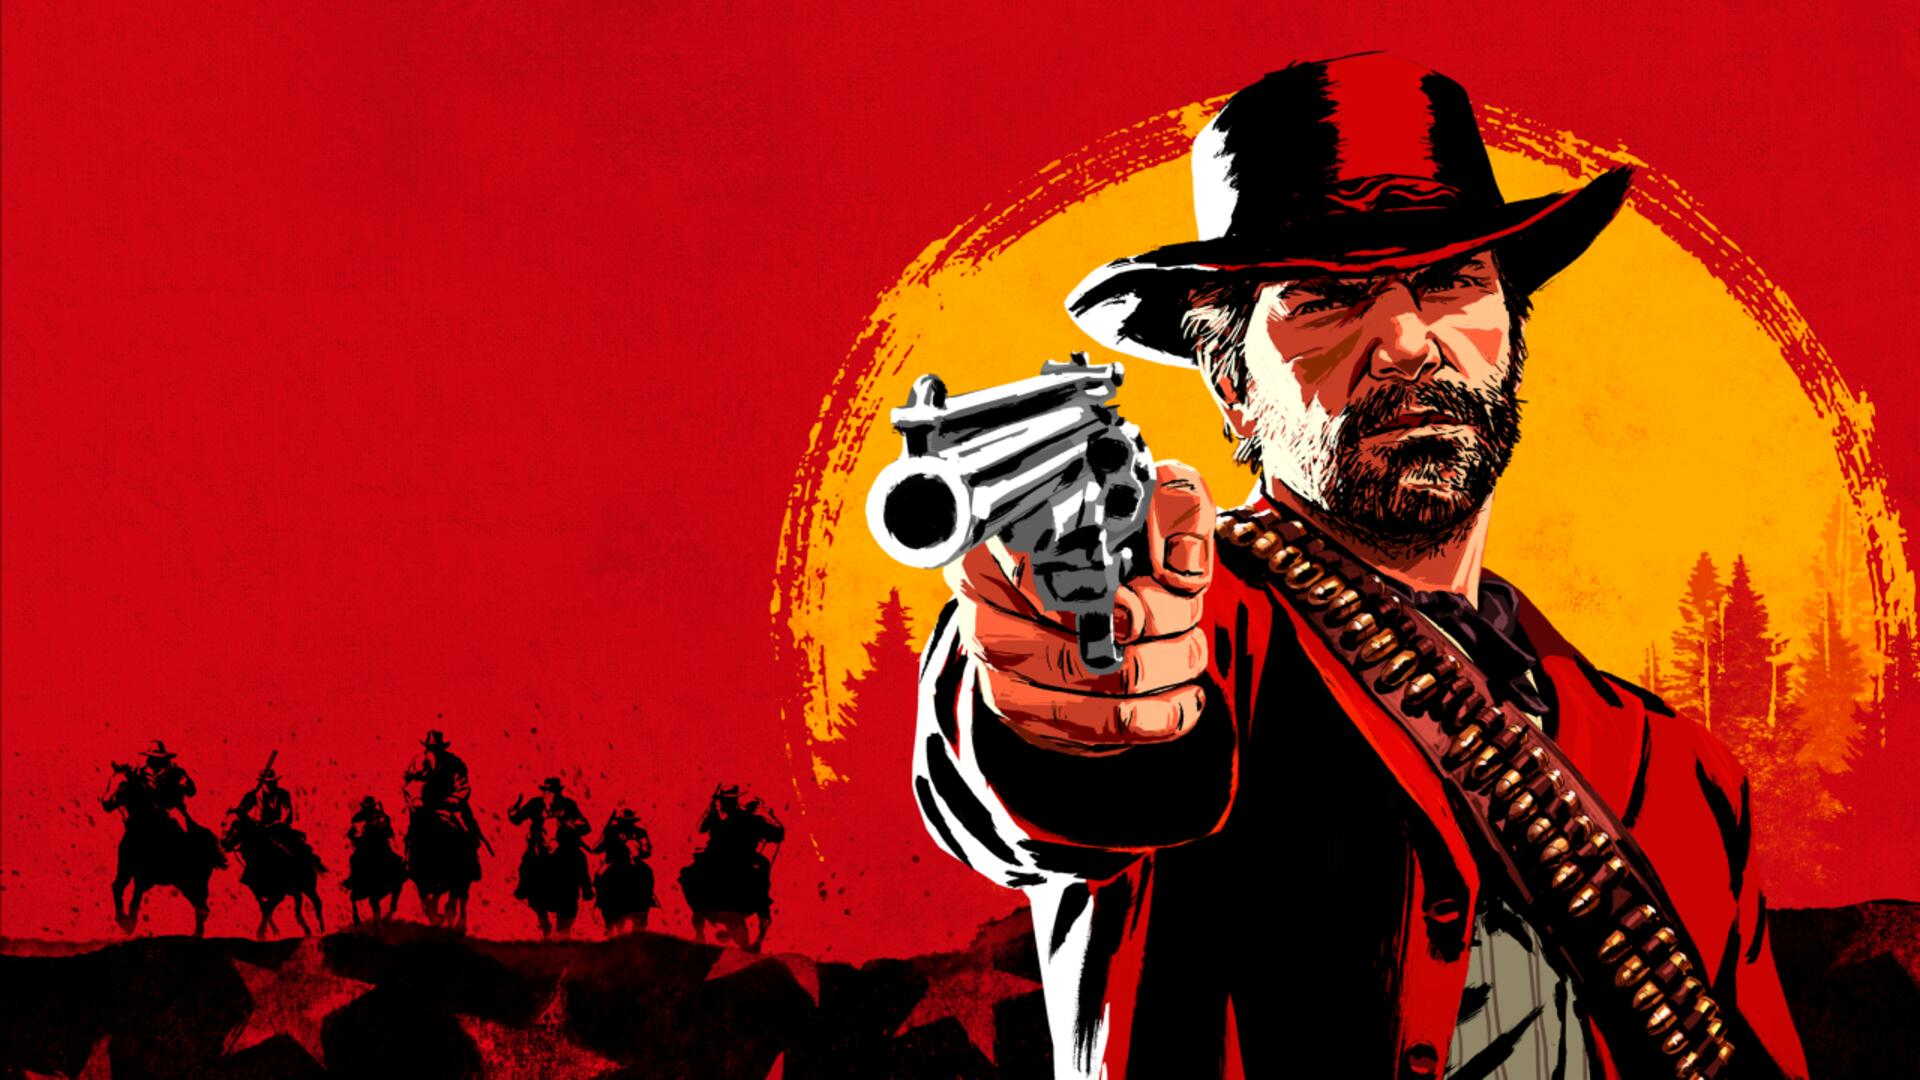 Red Dead Redemption 2 is Finally Coming to PC (And Stadia) Next Month